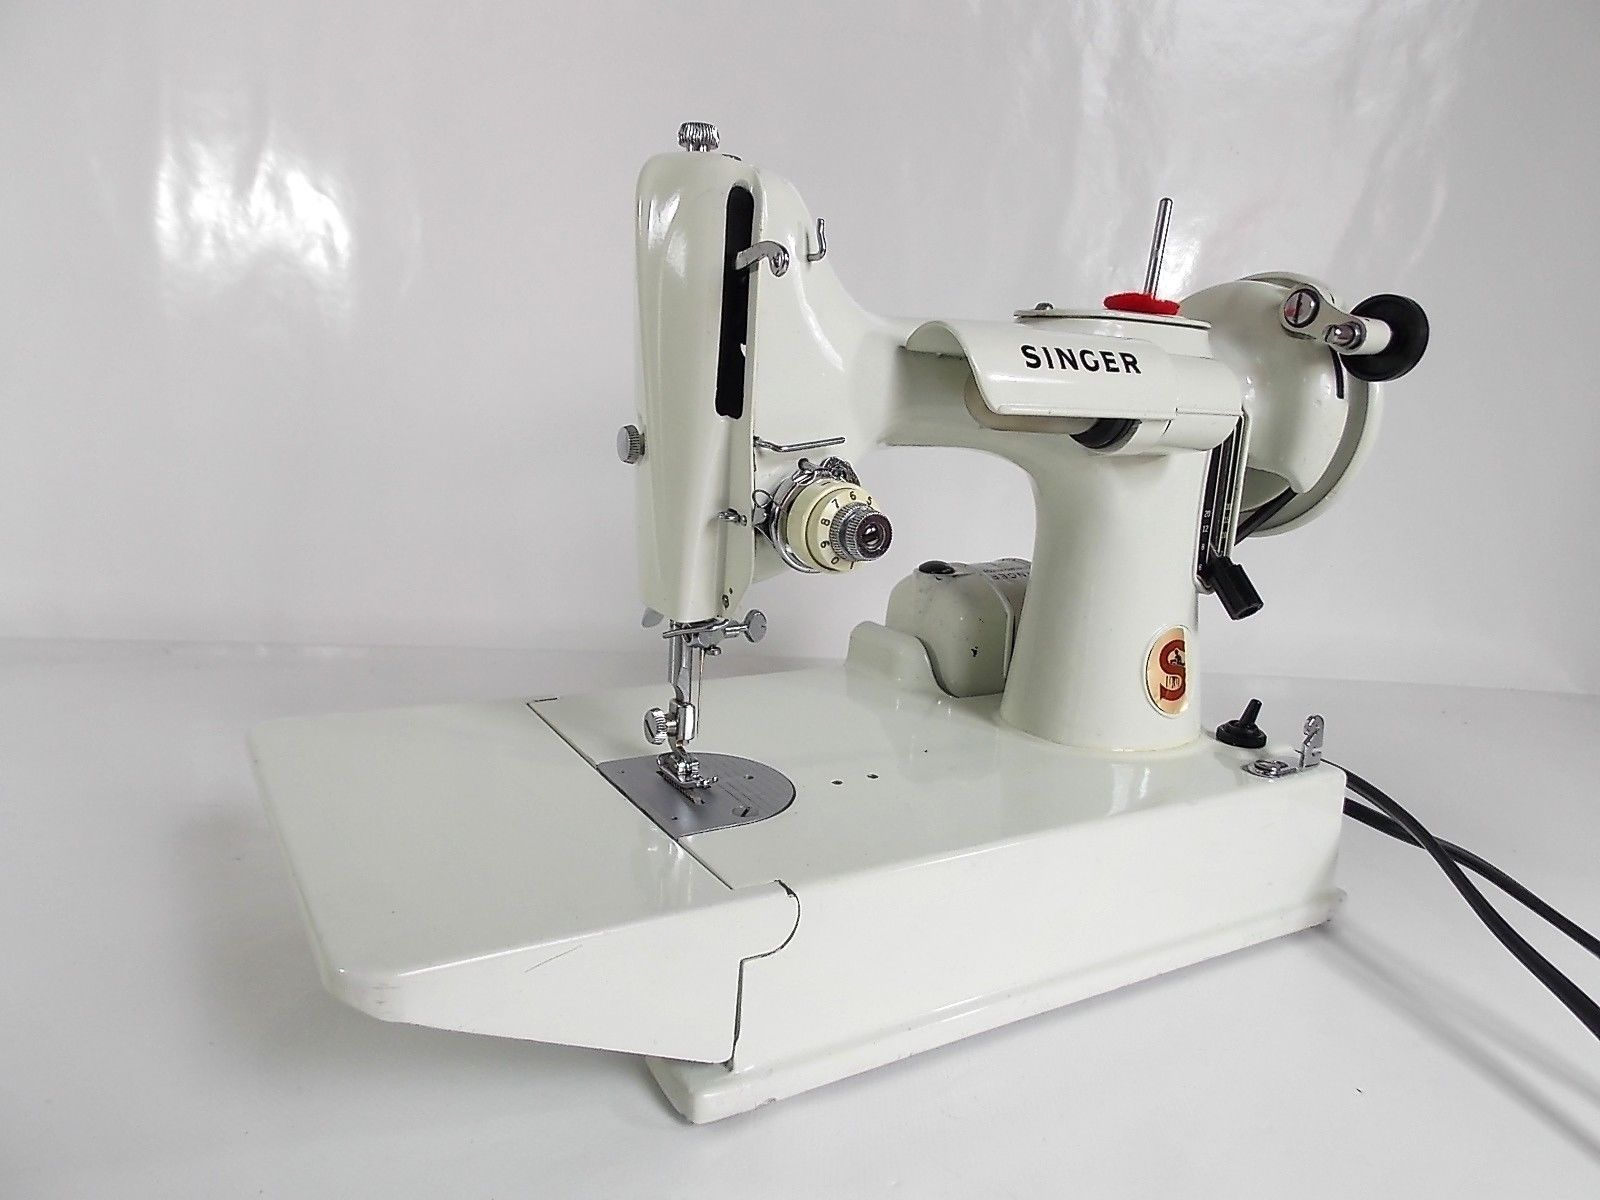 singer featherweight 221 dating Patented-antiquescom sells singer 221 222 featherweight sewing machines, quilters antique sewing machines.